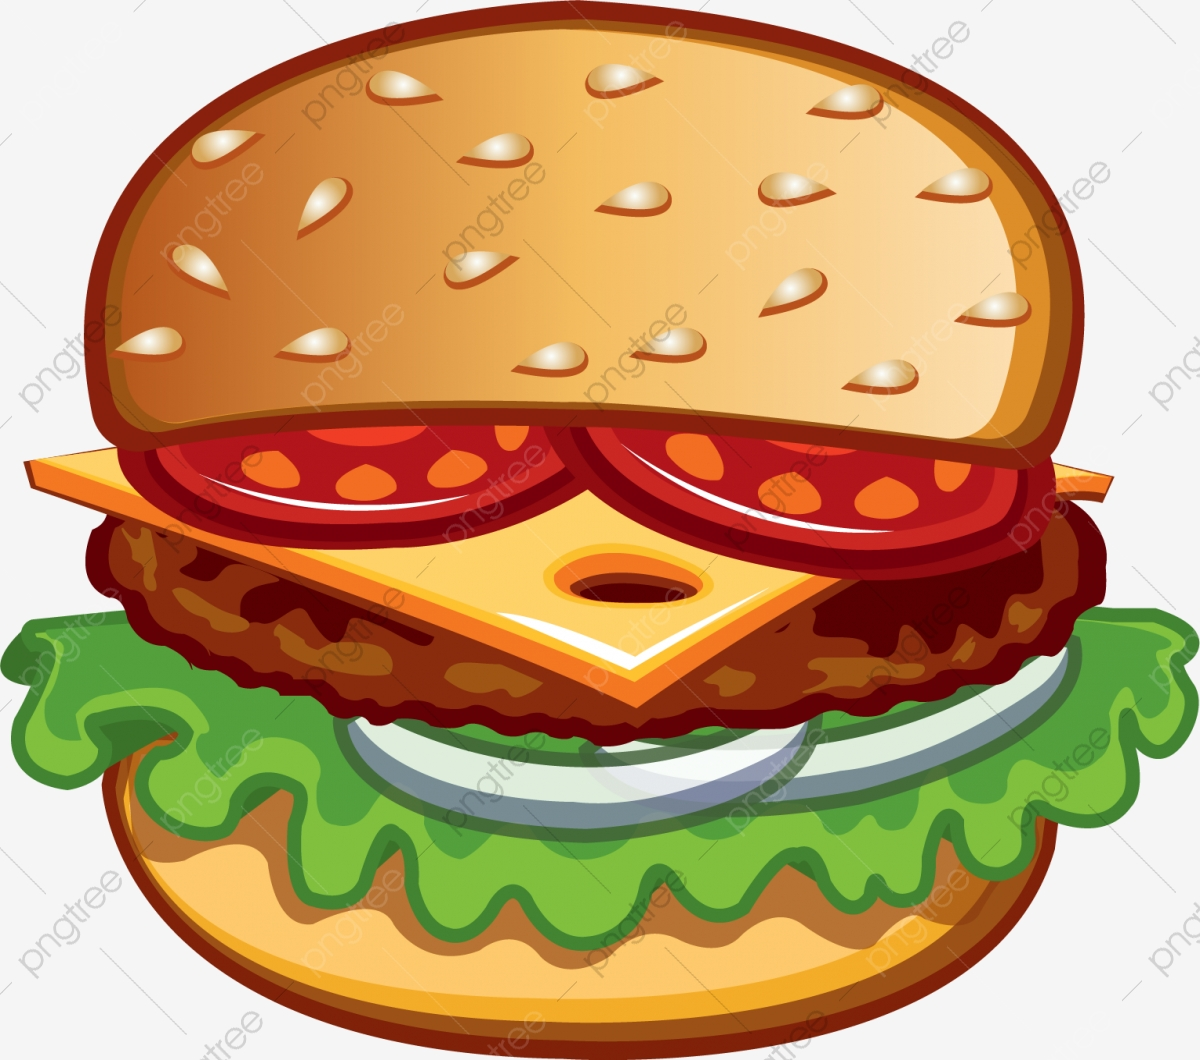 jpg freeuse library Burger clipart. Layered hamburger western png